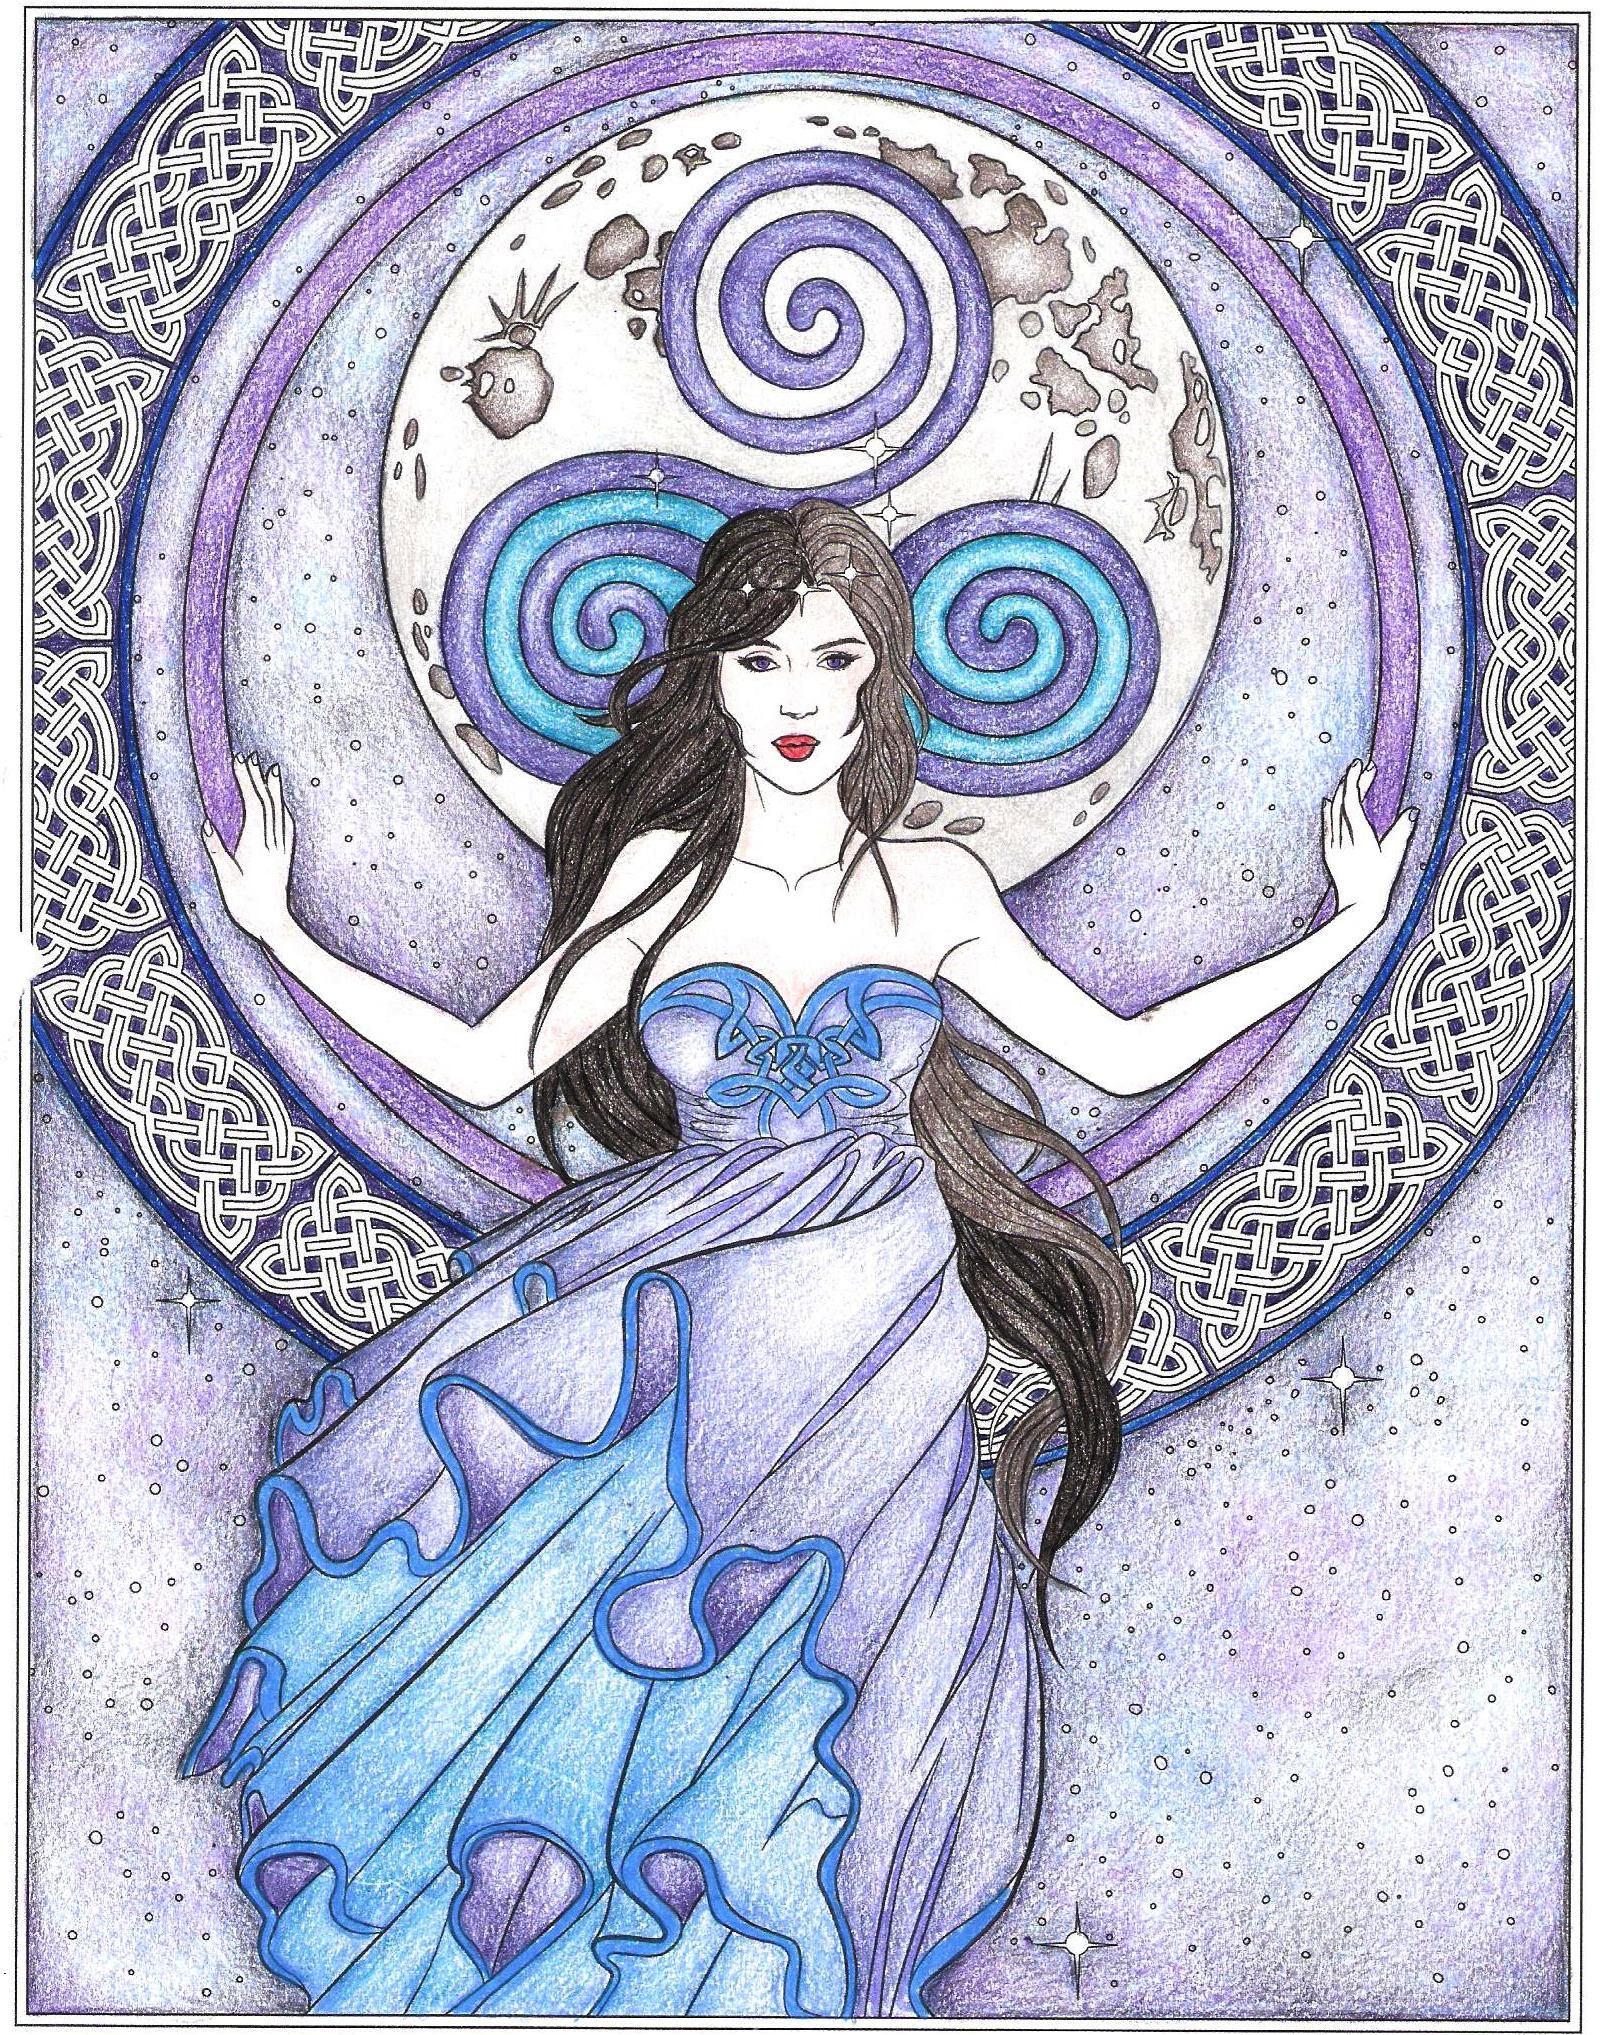 Fairy art coloring book by selina fenech -  Arianrhod From Goddess And Mythology Coloring Book By Selina Fenech Fairies And Fantasy